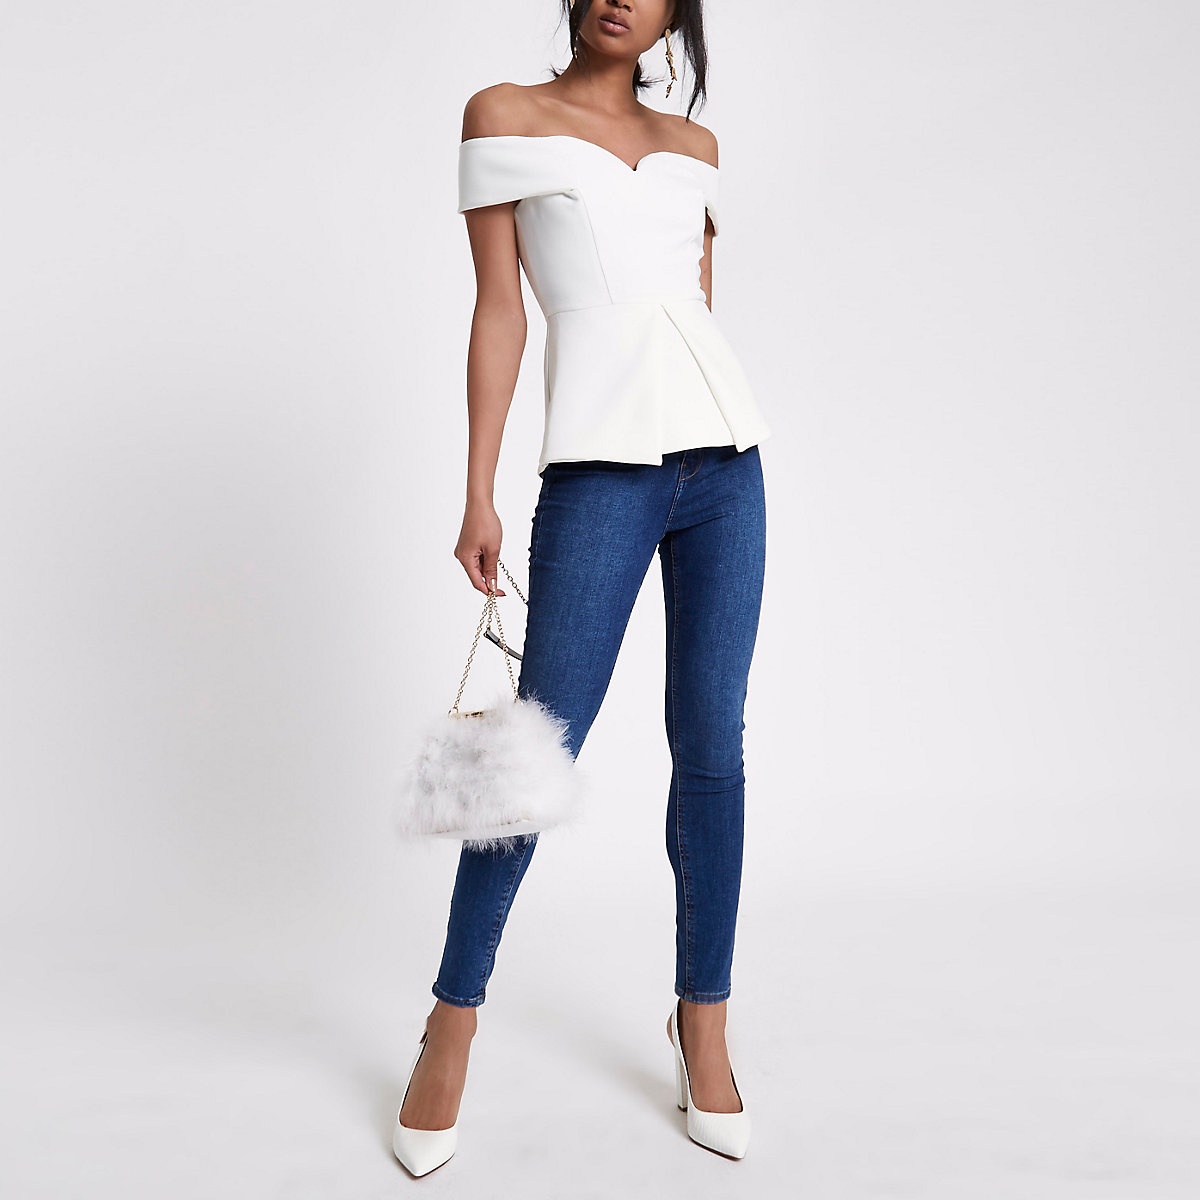 White structured bardot top